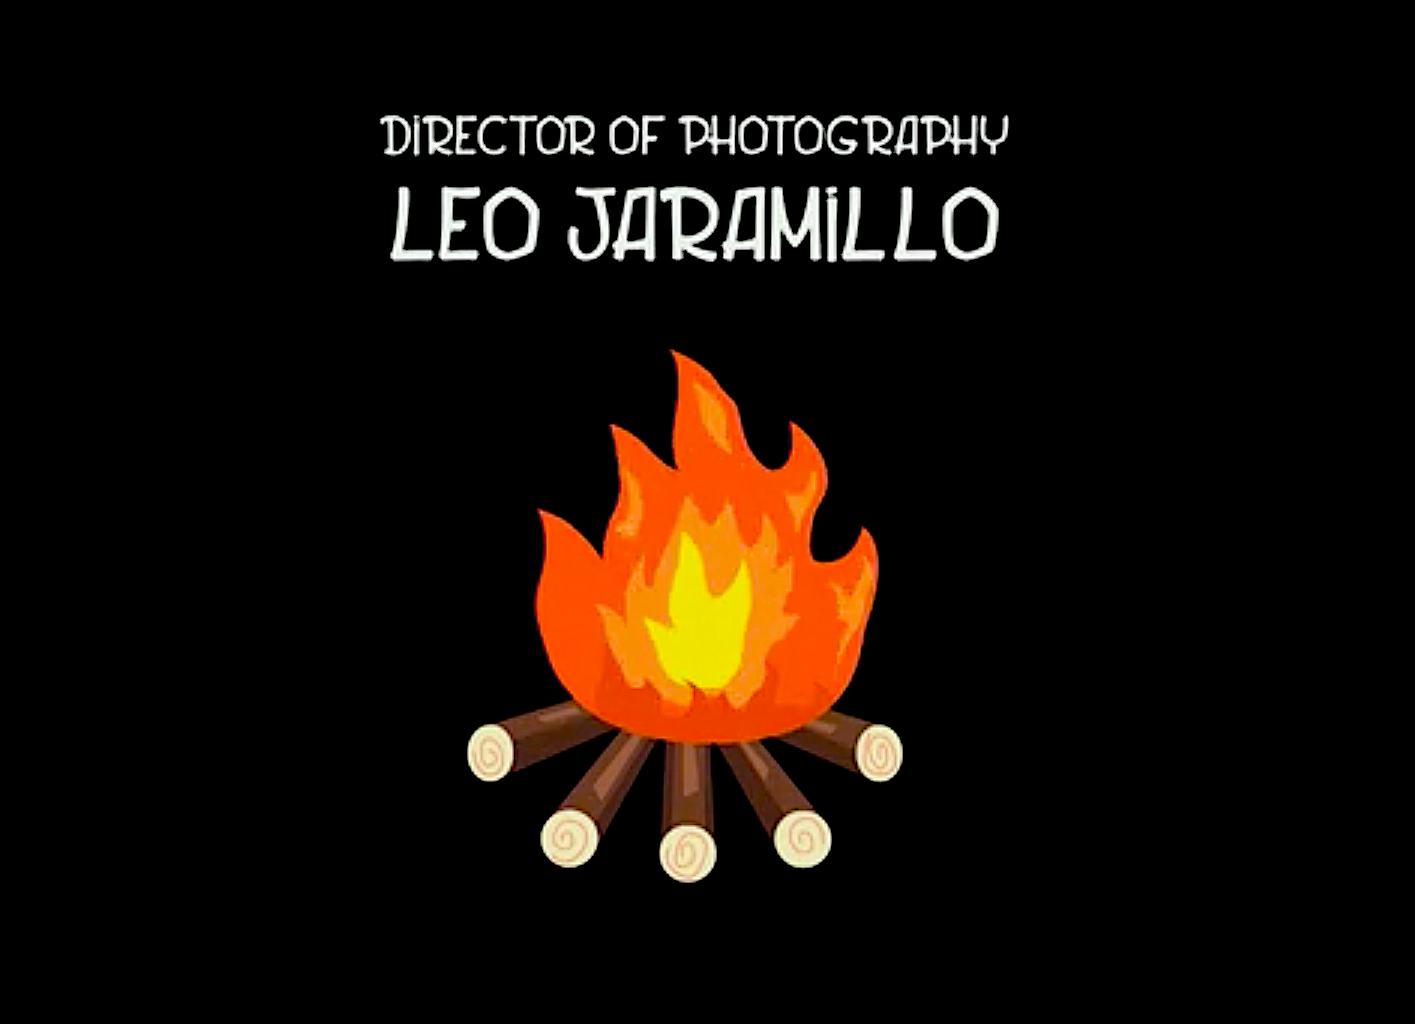 Leo Jaramillo, Cinematographer, Director of Photography